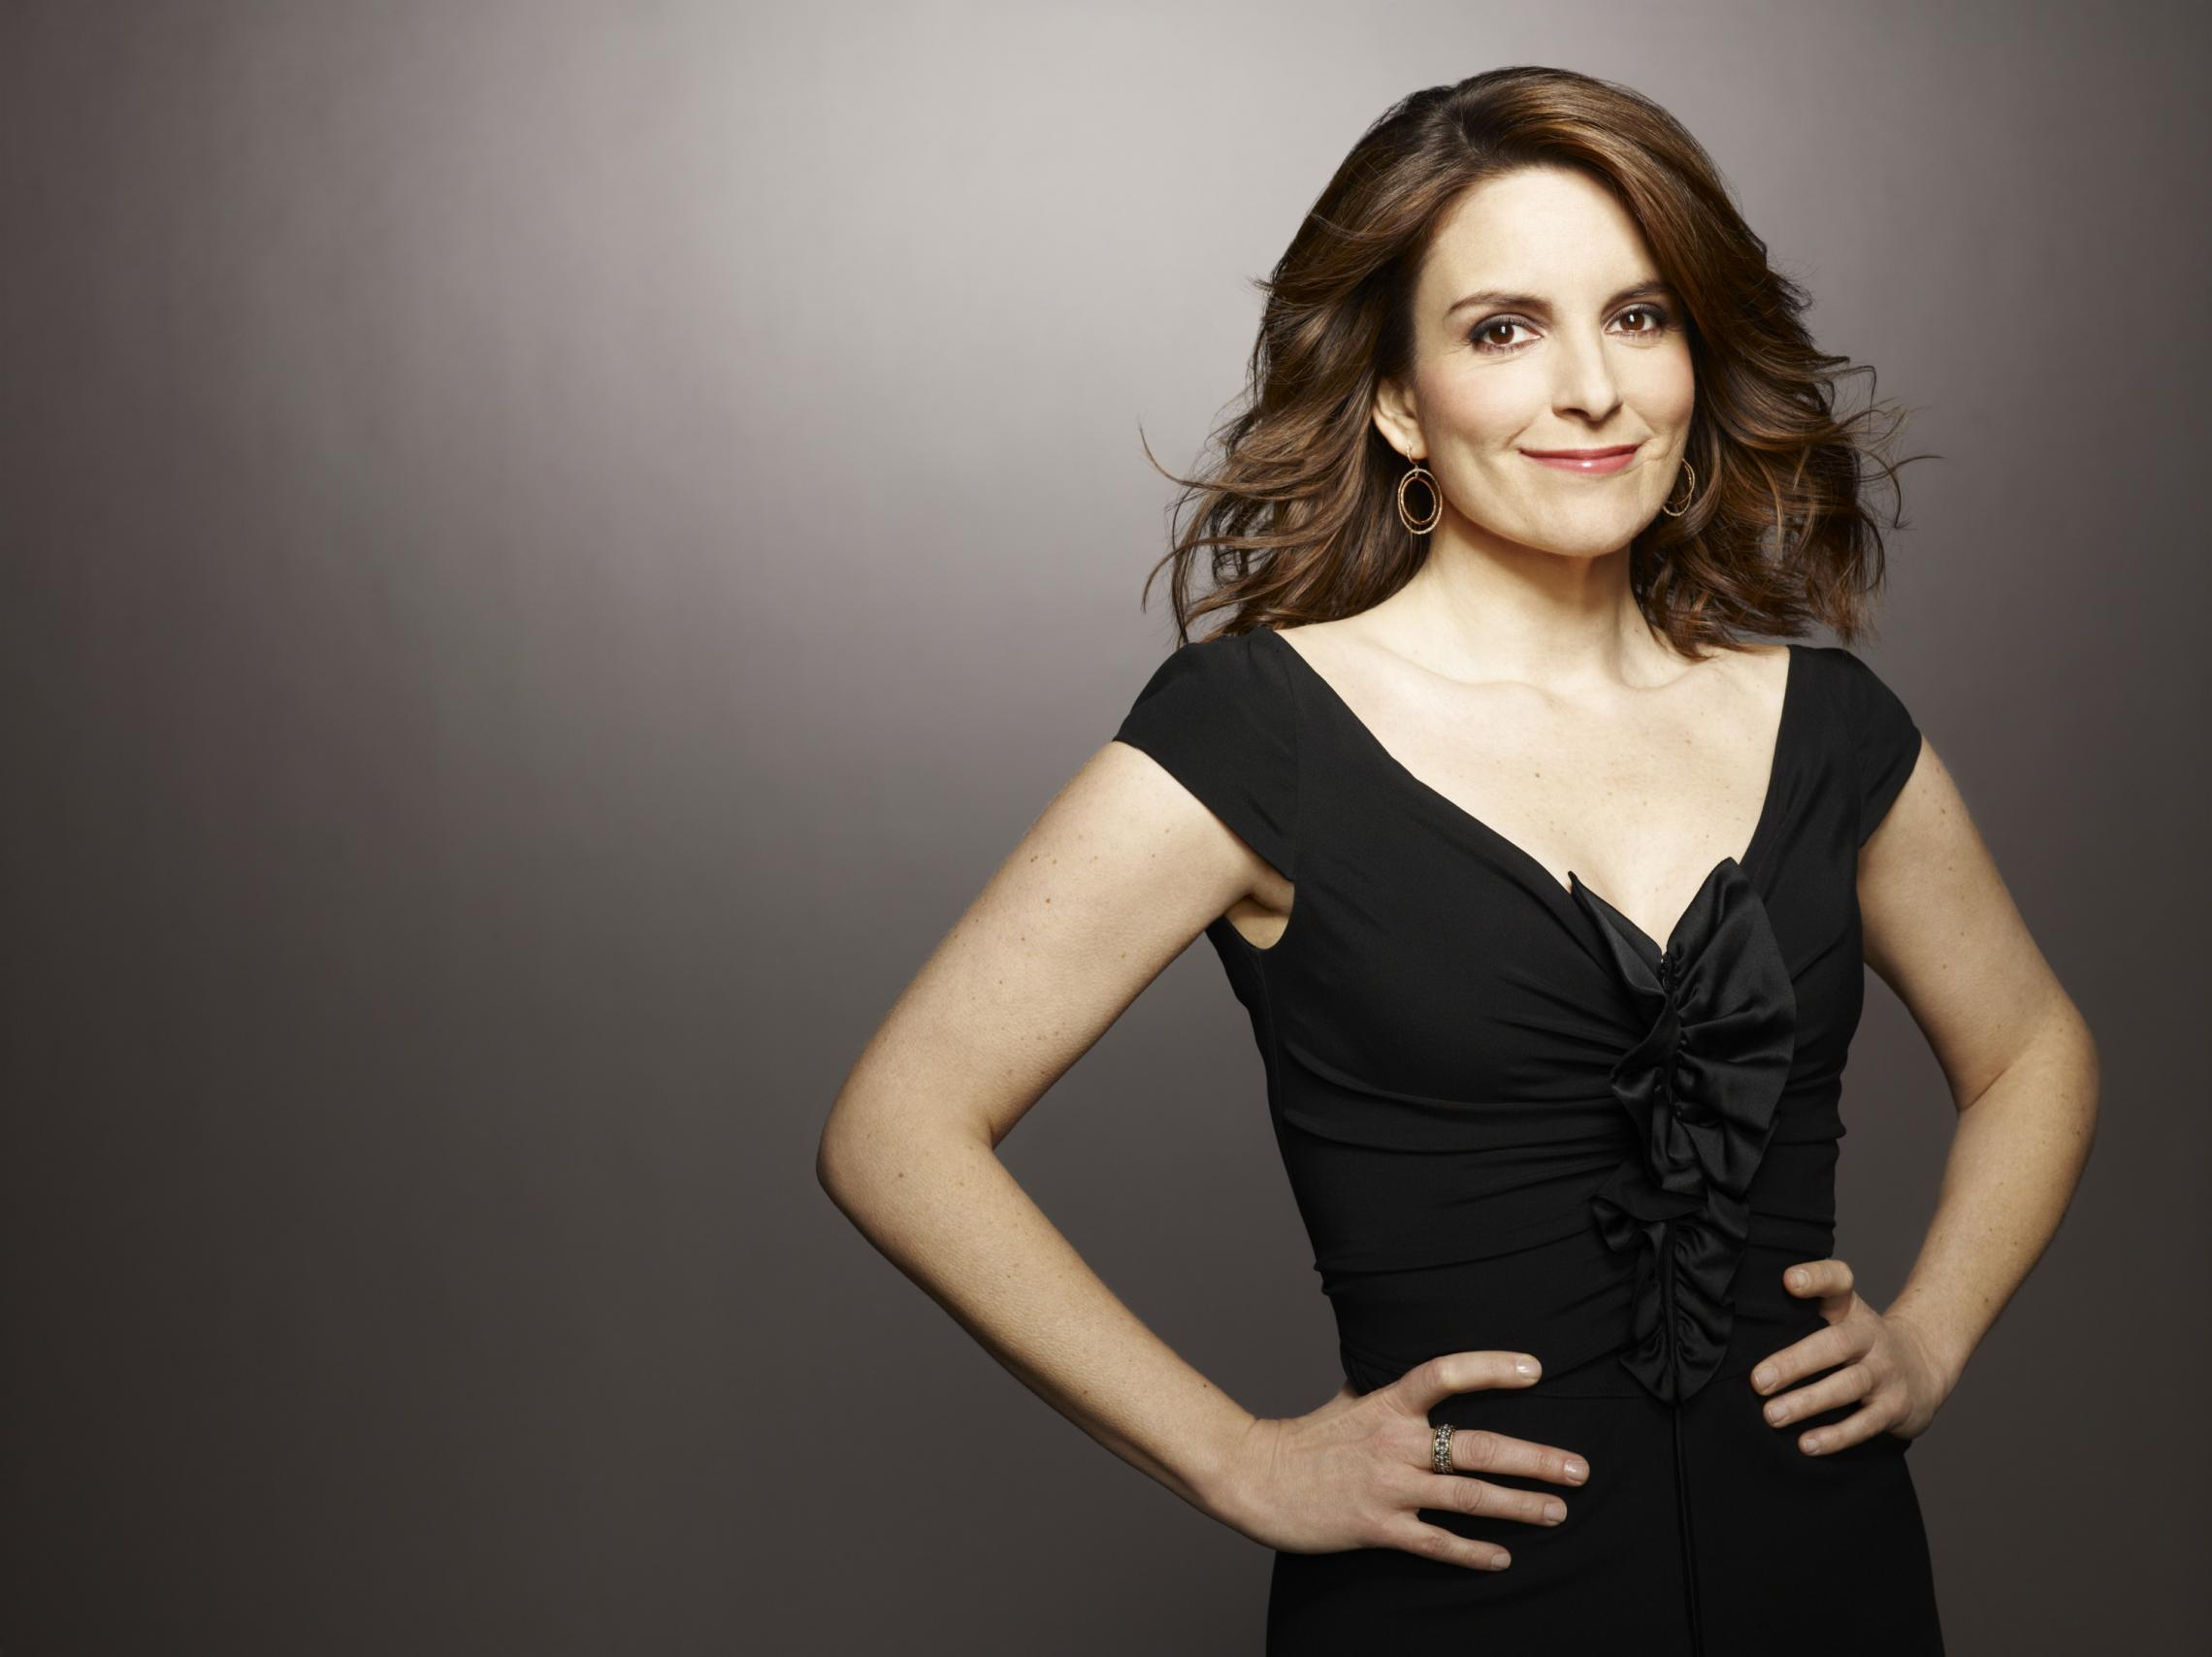 Snapchat Tina Fey nude (75 foto and video), Pussy, Fappening, Feet, cleavage 2015